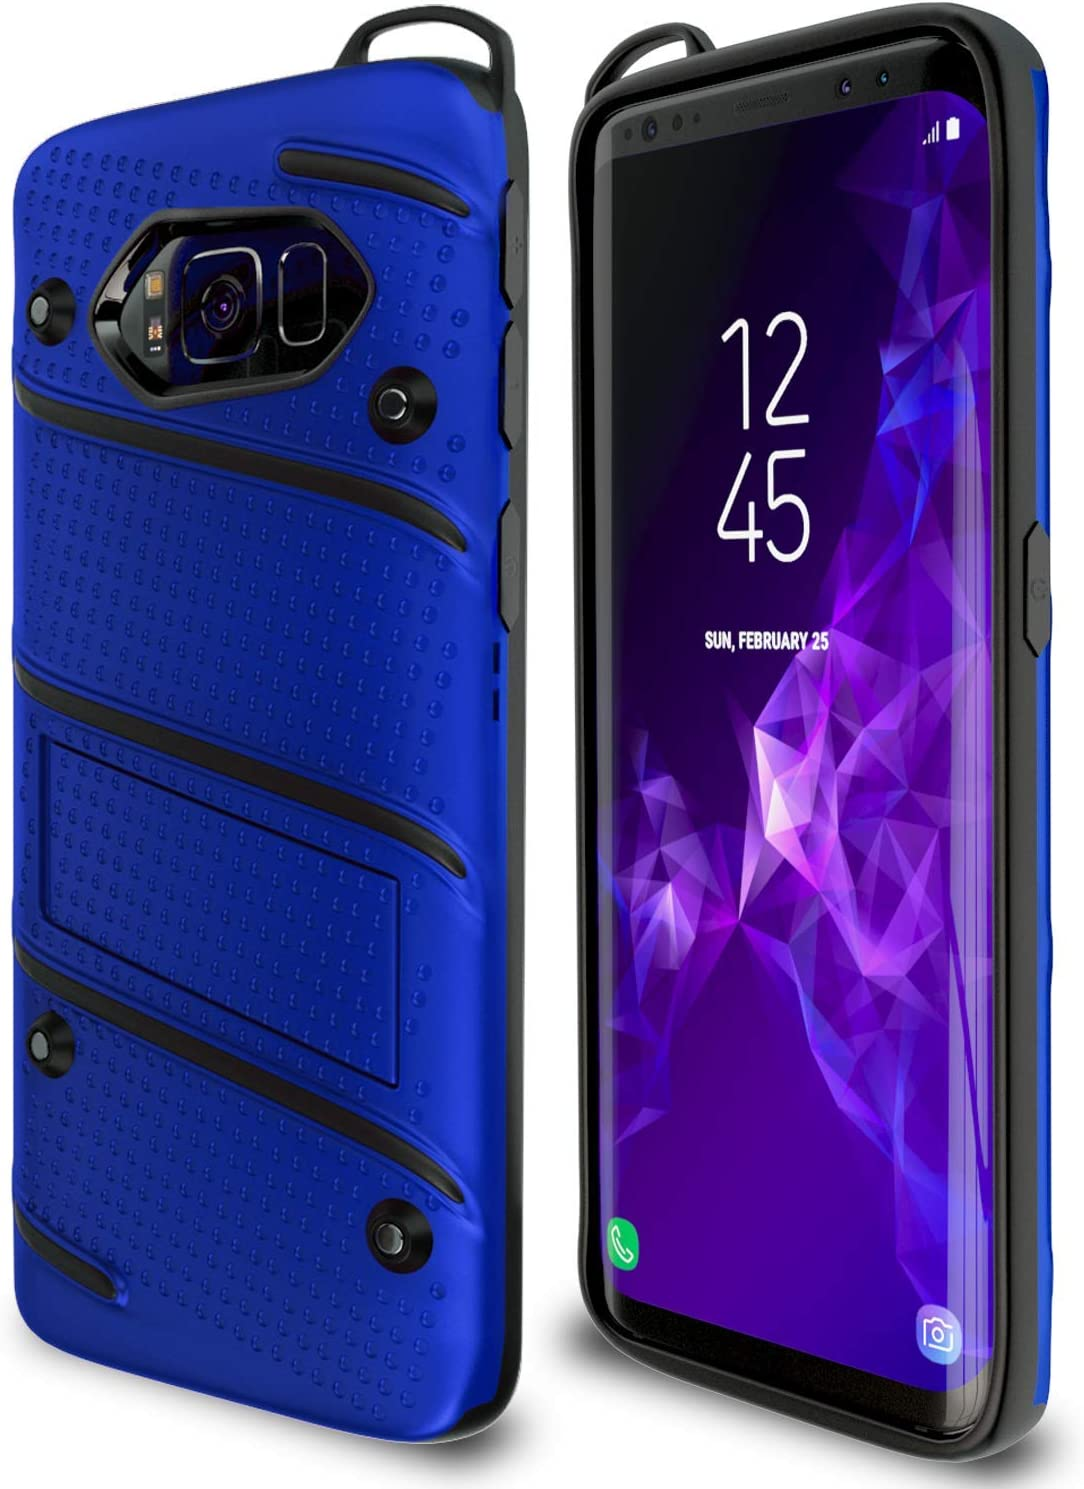 Samsung Galaxy S8 Case | Military Grade | 15ft. Drop Tested | Protective Case | Kickstand | Shockproof | Wireless Charging | Dual Layer Heavy Duty | Compatible with Samsung Galaxy S8 - Blue